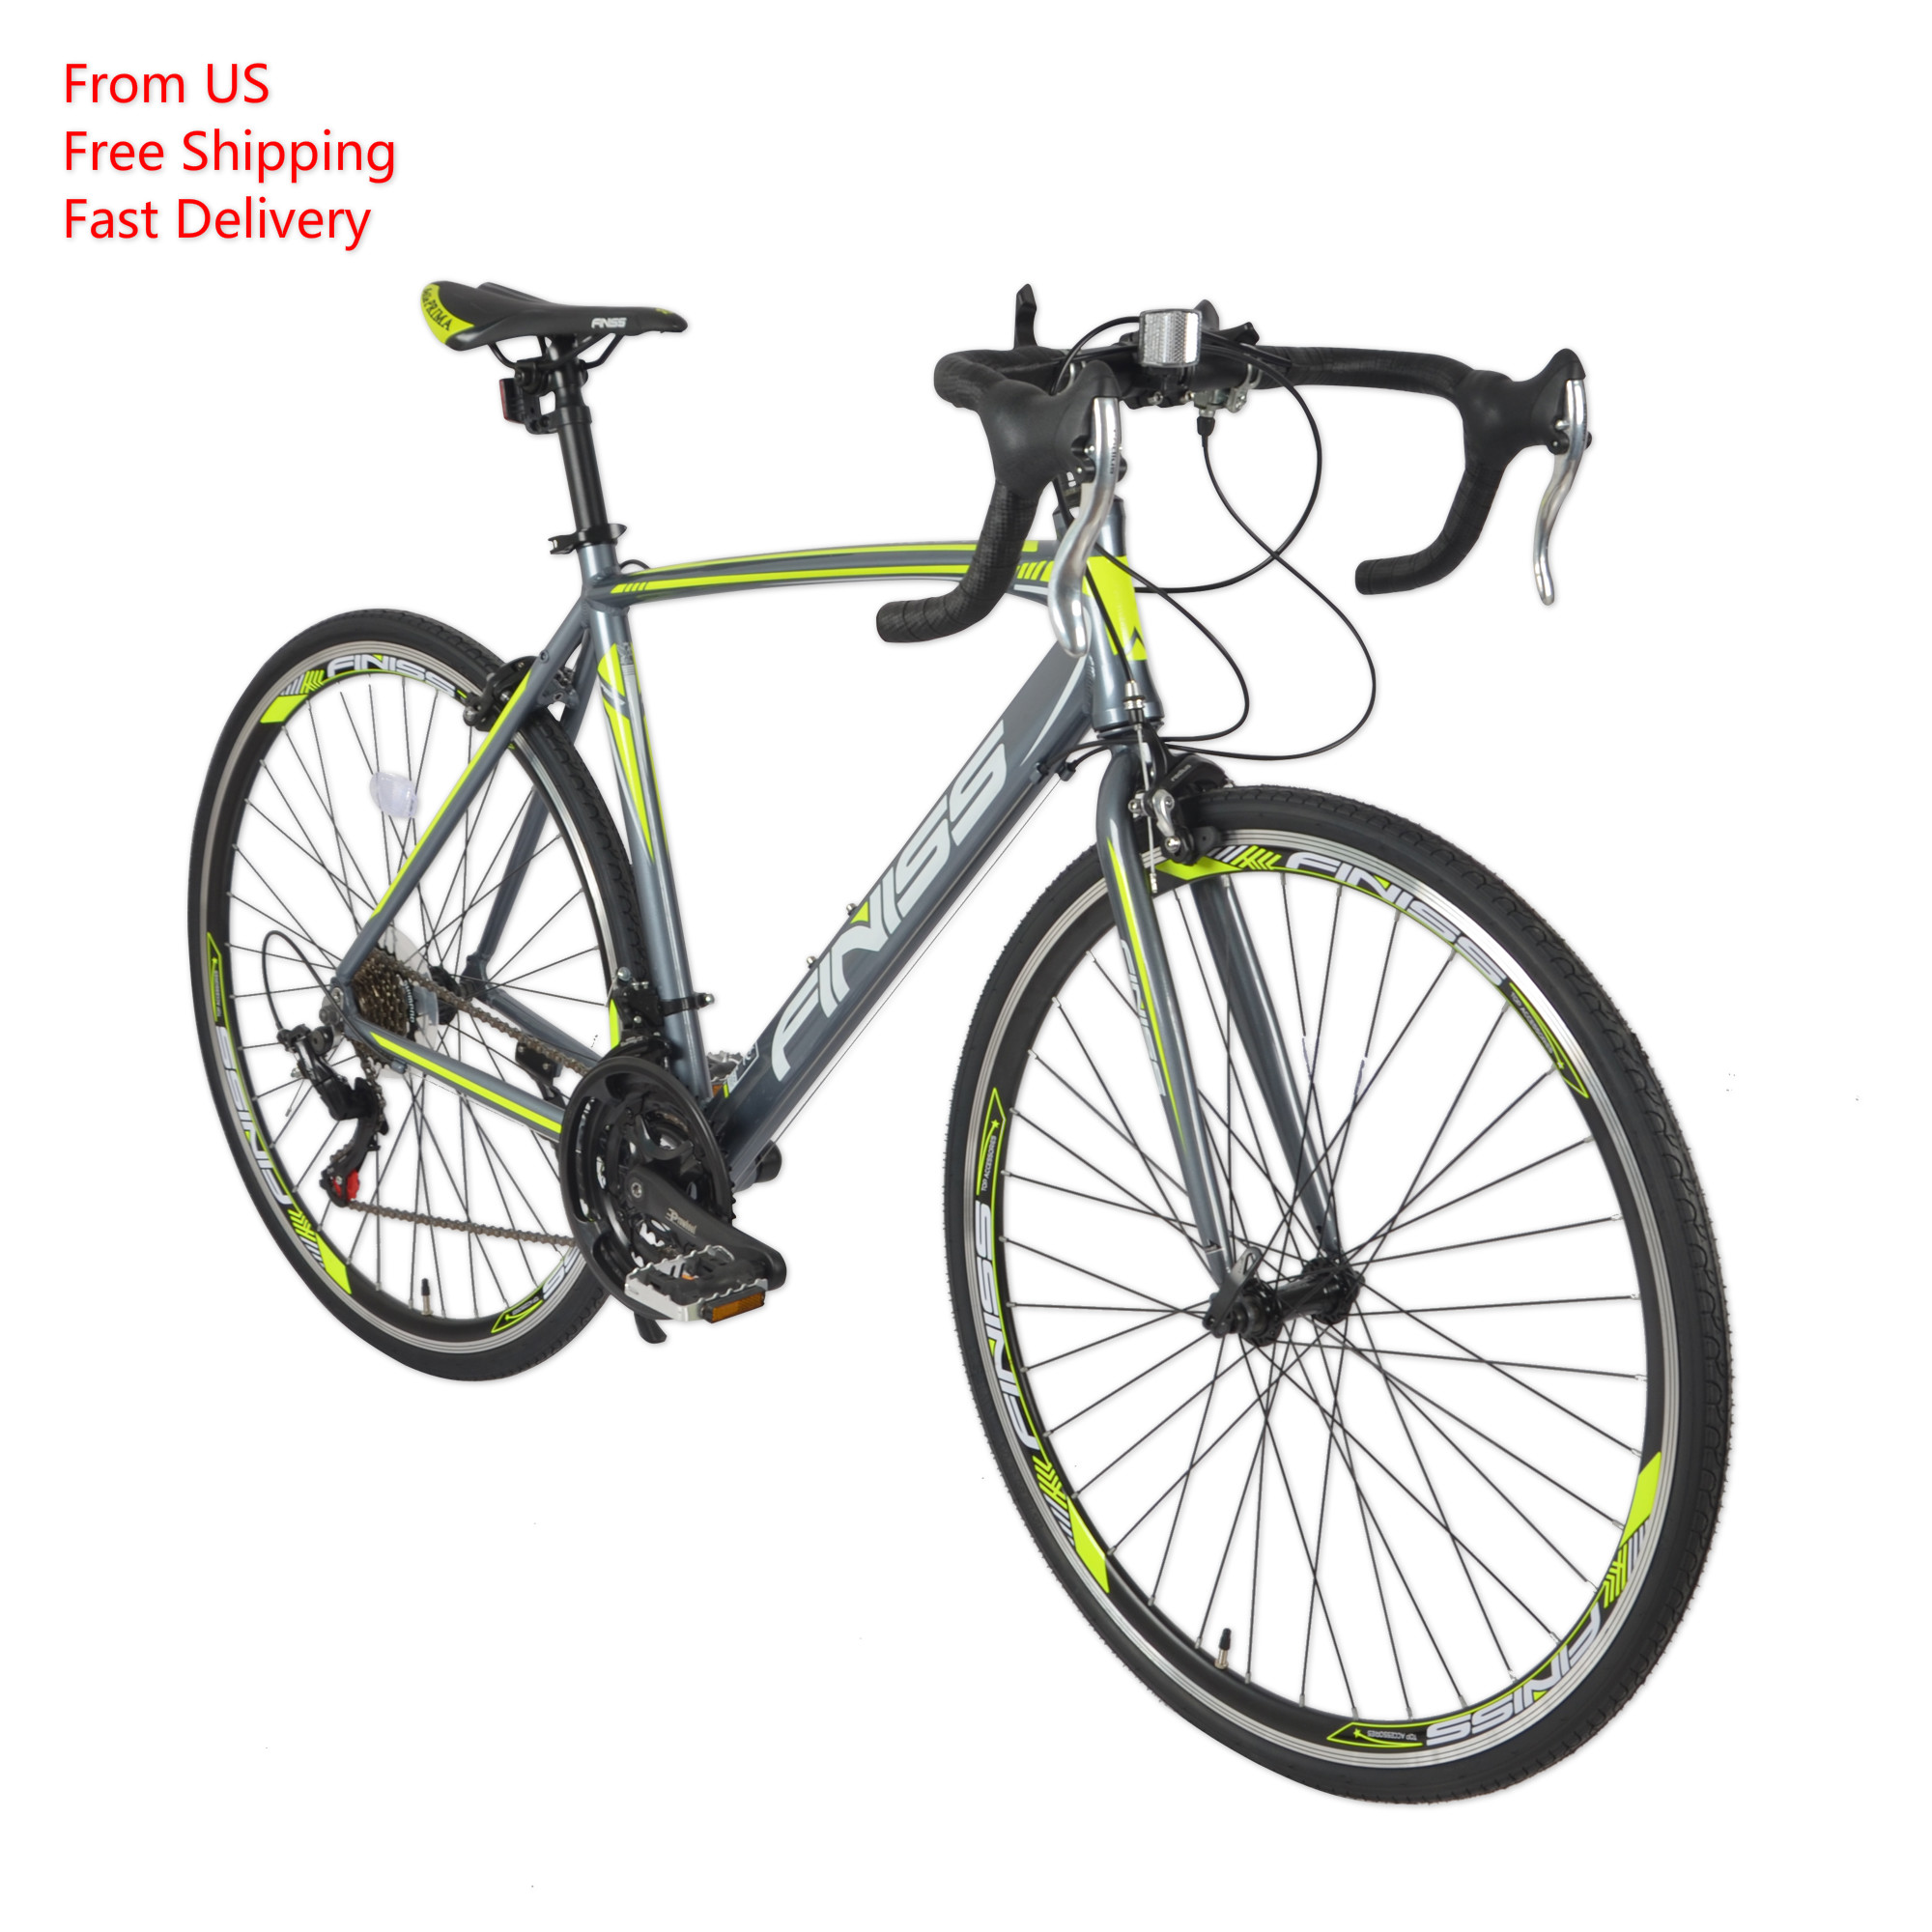 700C-21 Speeds Professional Road Bike Frame Bicycle F/R Brake 7 Speed Index  Professional Chain 330LBS Max Load Cycling Bicycle